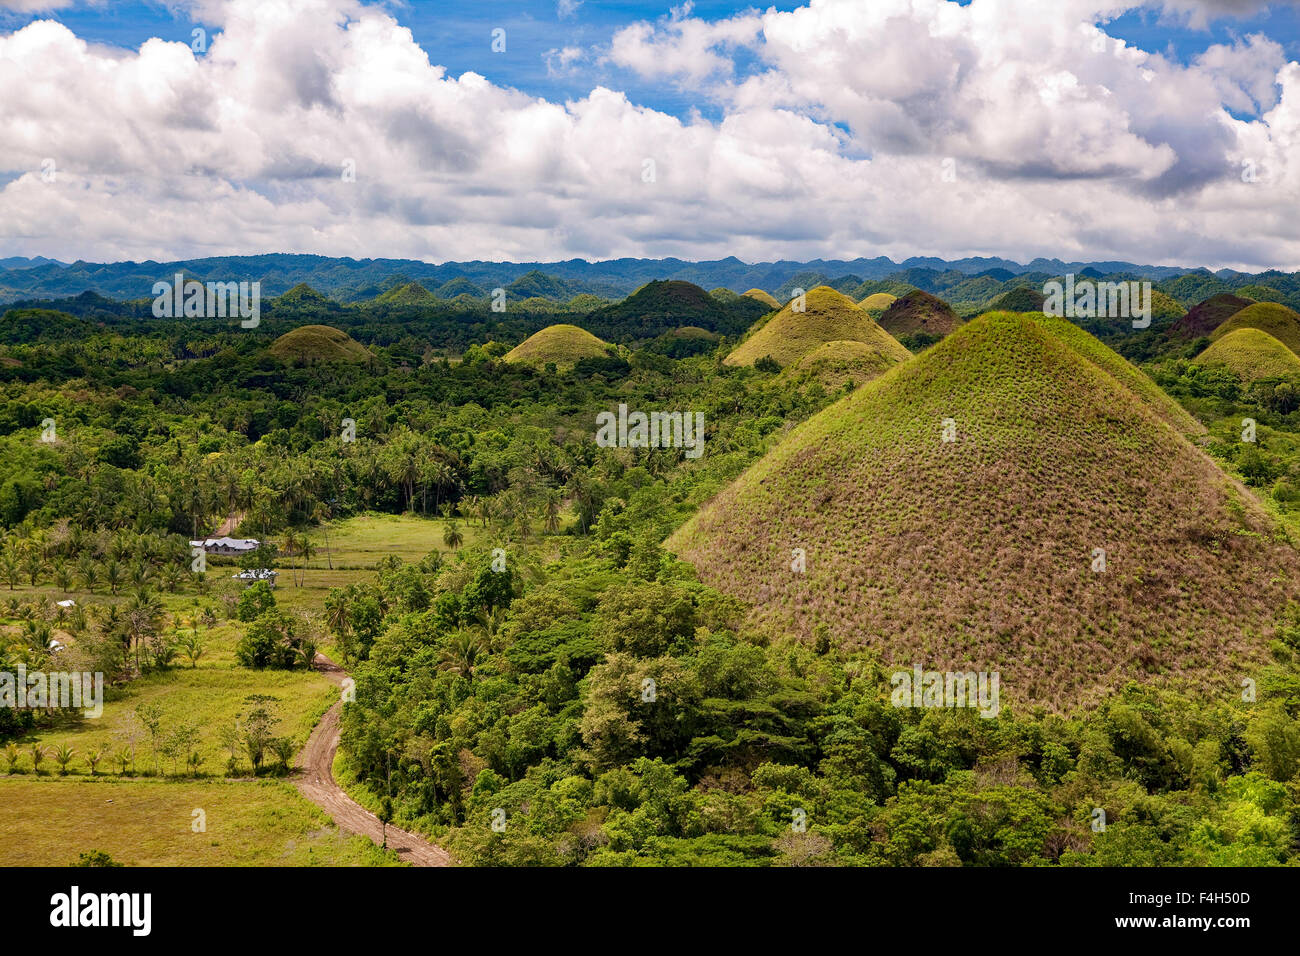 The Chocolate Hills of Bohol Island, Philippines numbering about 1,176 are grass-covered karst limestone geological - Stock Image